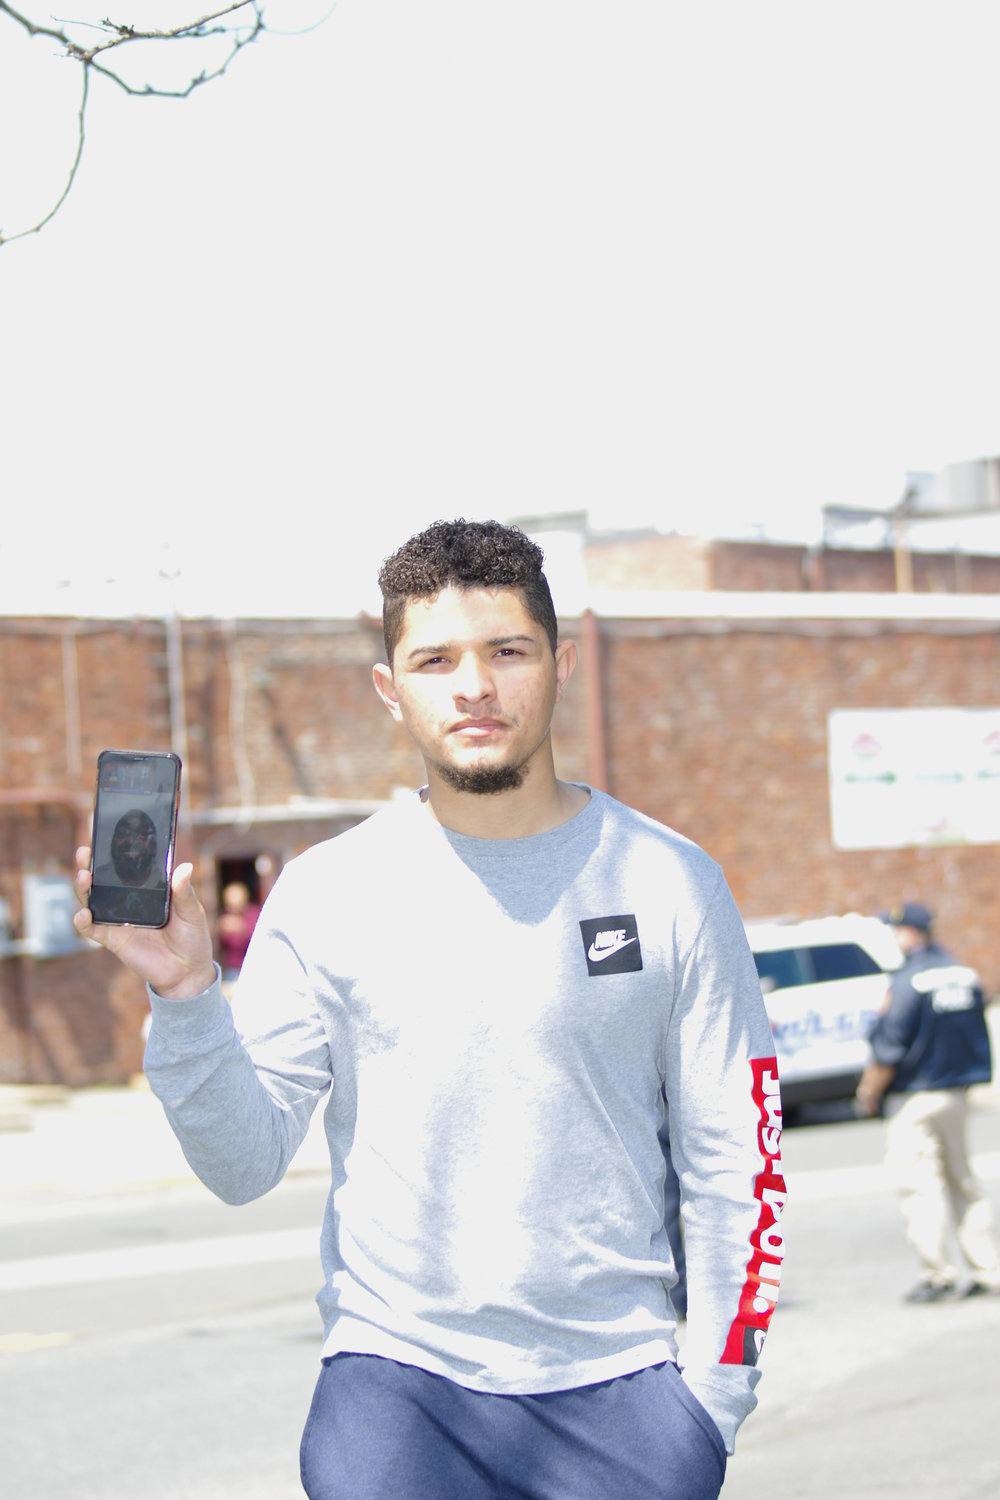 Frank Martinez, of West Hempstead, held a cell phone with images of the shooter, who was an employee at Stop & Shop.